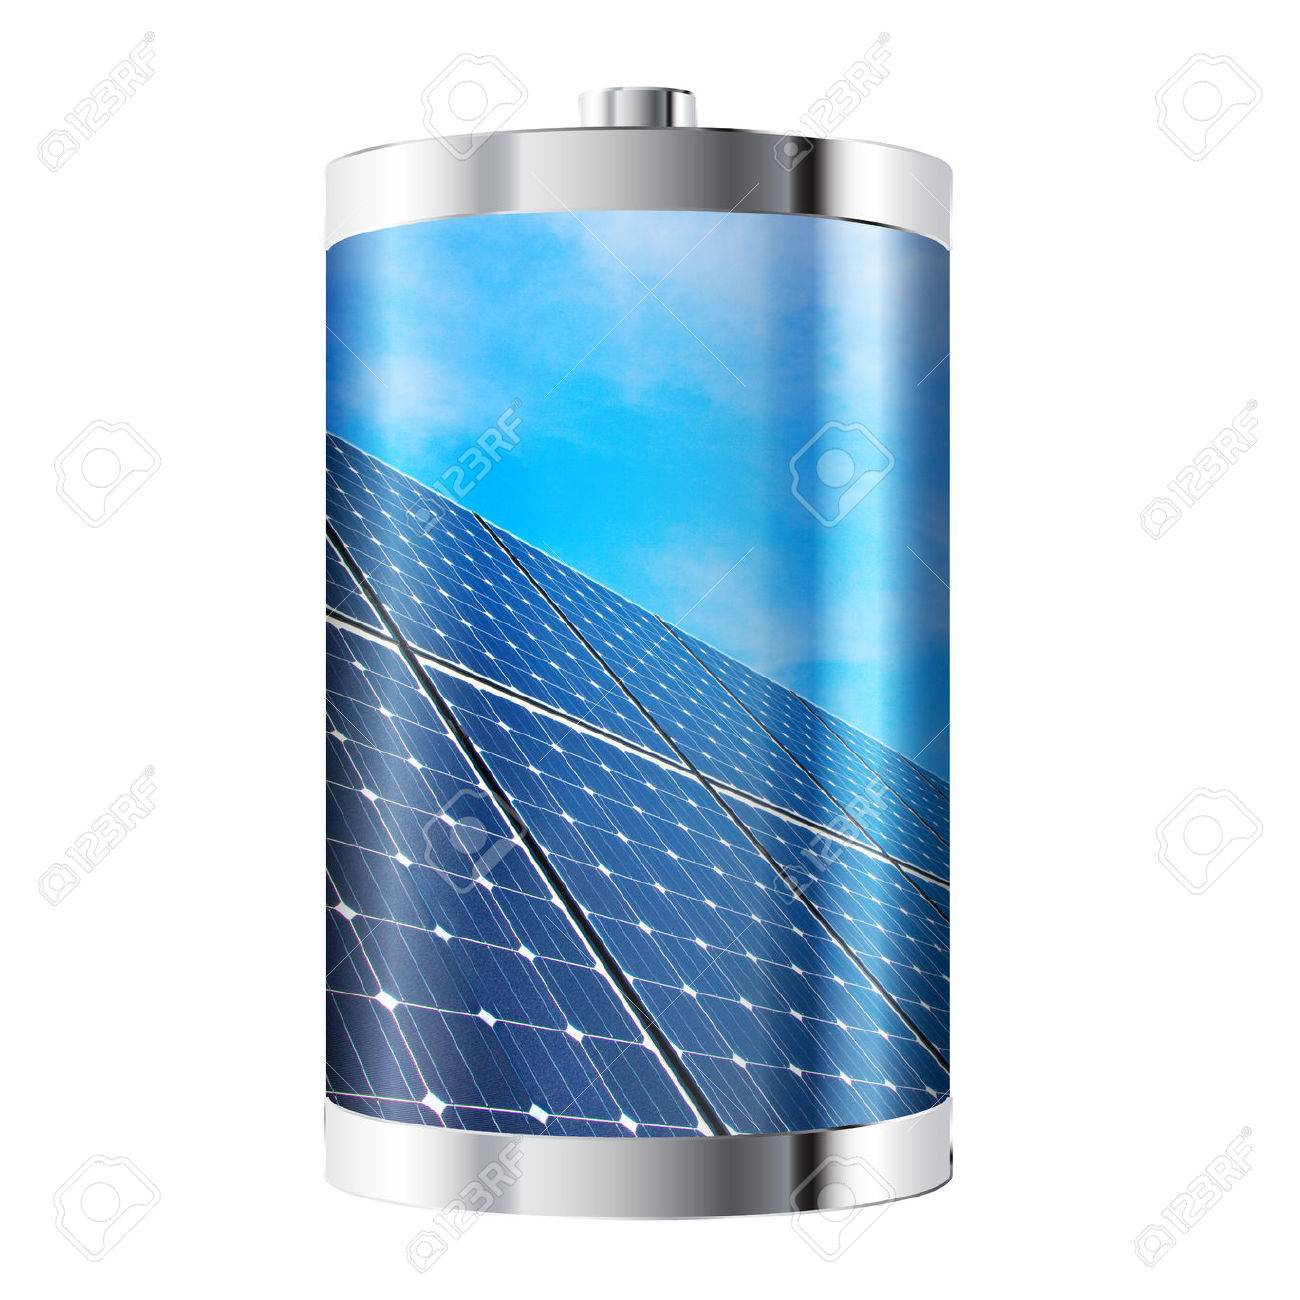 Battery containing solar panels against blue sky - 23862749